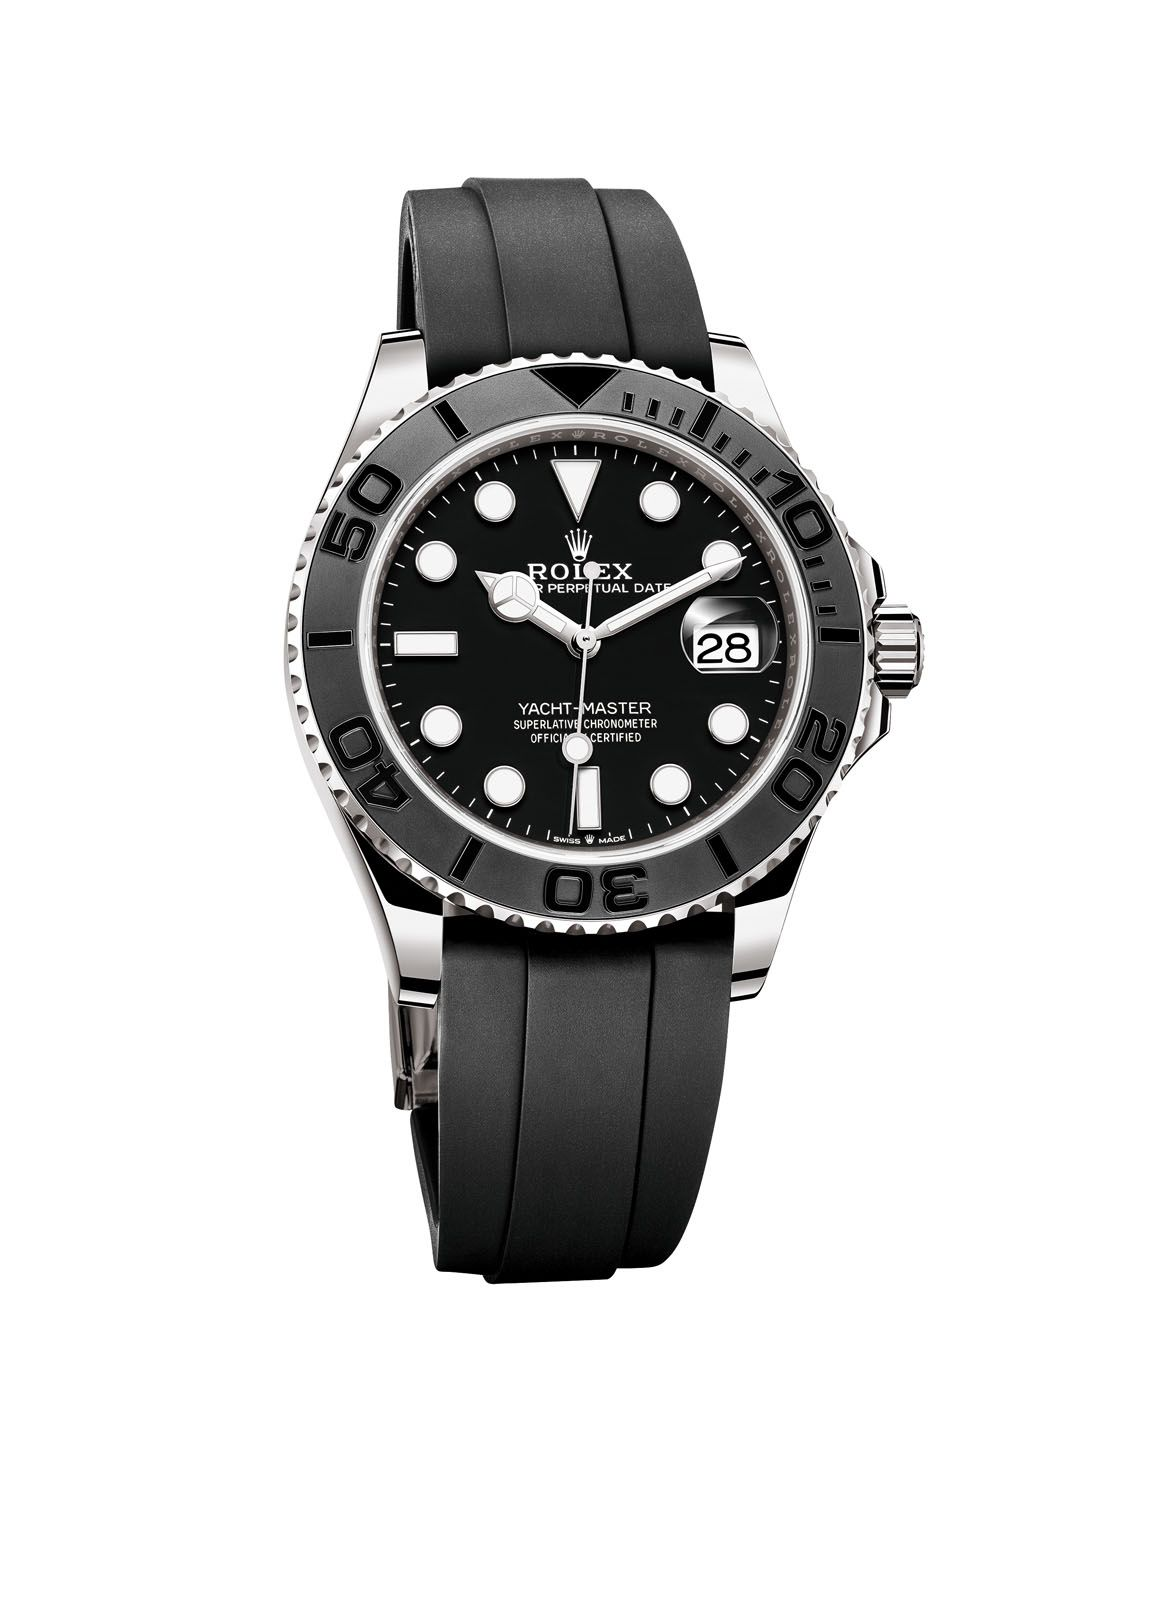 The Rolex Oyster Perpetual Yacht-Master 42